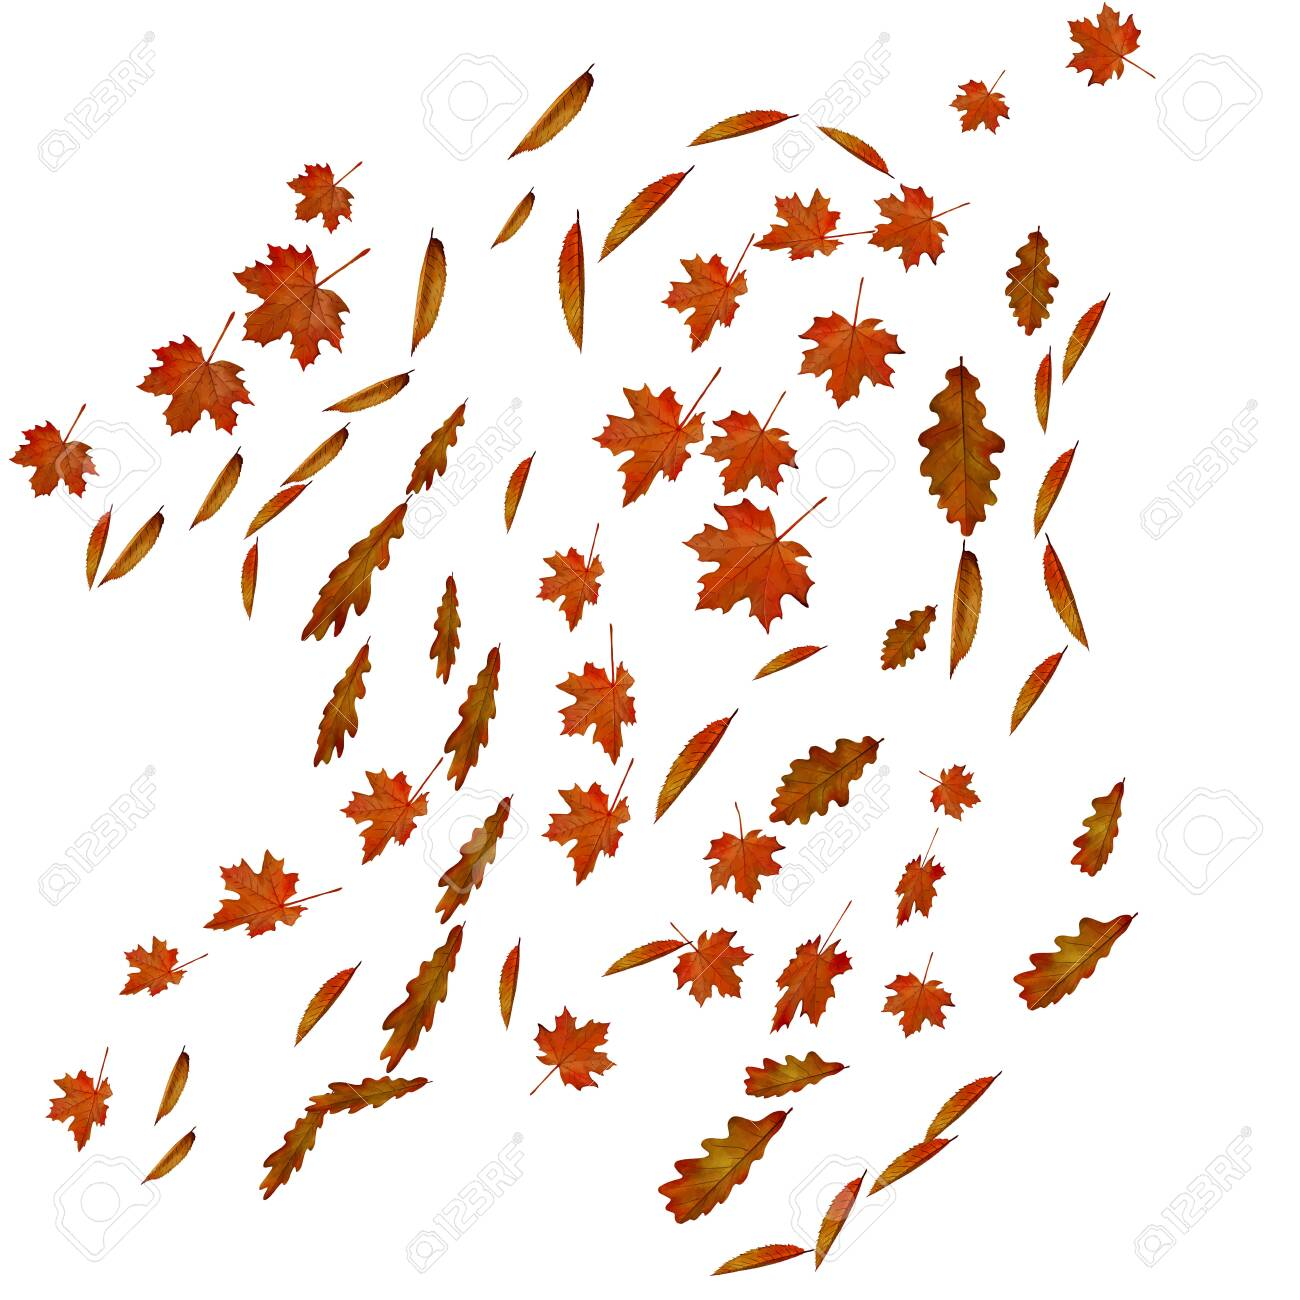 Falling autumn maple, cherry and oak leaves. - 130400274